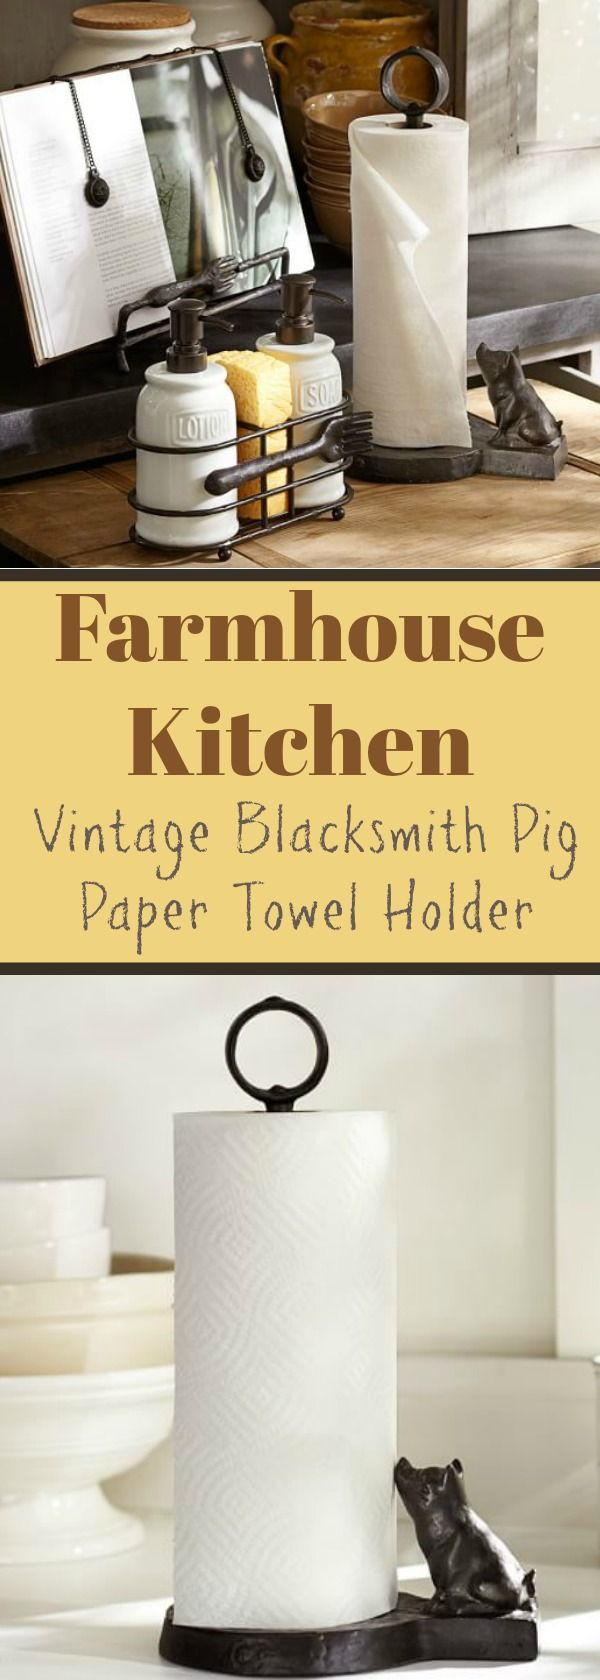 Piggy! I need this in my kitchen. Farmhouse Kitchen: Vintage Blacksmith Pig Paper Towel Holder ~ A helpful little pig transforms this traditional kitchen essential into a charming decorative piece. Finished in antique bronze, our sturdy paper towel holder features a wide base to fit large rolls and a ring-shaped top. #farmhousekitchen #ad #vintagehome #pigs